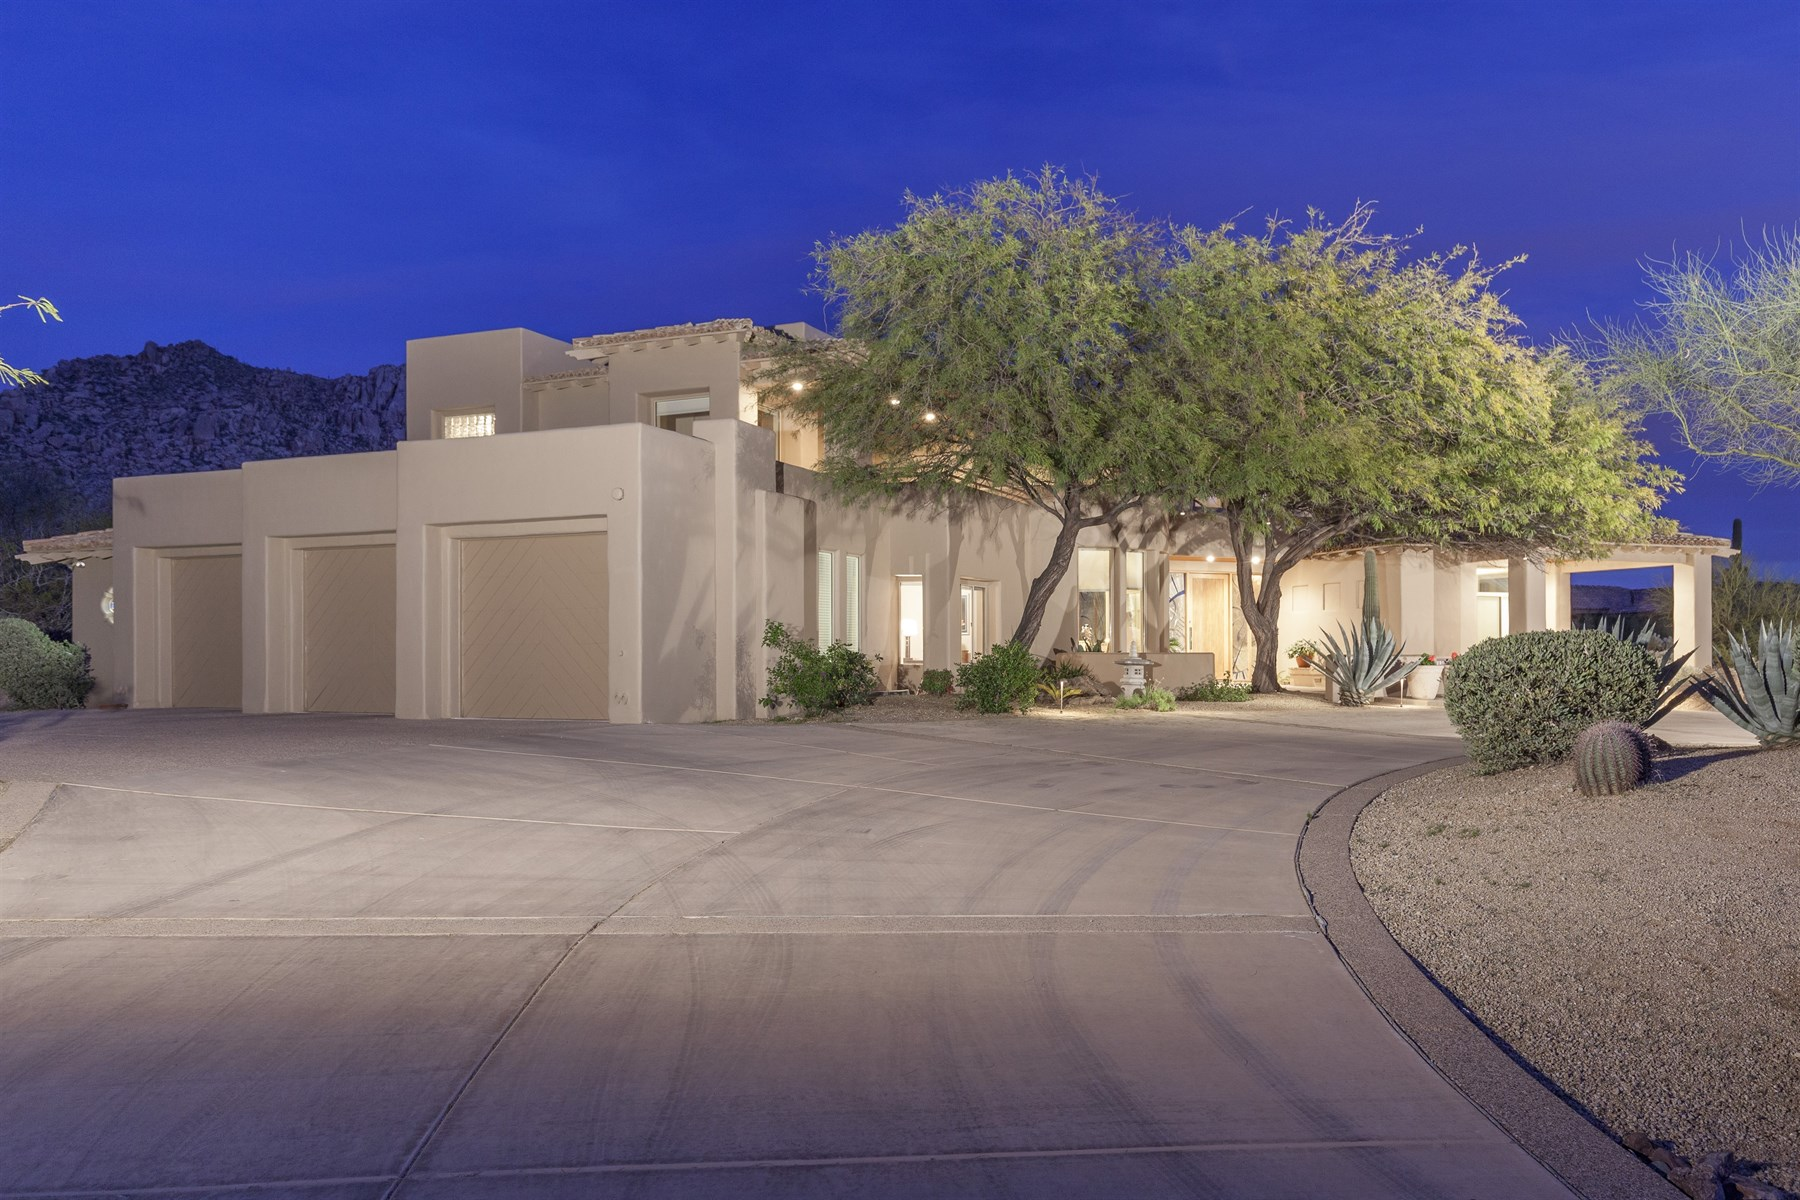 Single Family Home for Sale at Troon Country Club Golf Course Lot In The Gated Community Of Troon Fairways 25936 N 104th Way Scottsdale, Arizona, 85255 United States